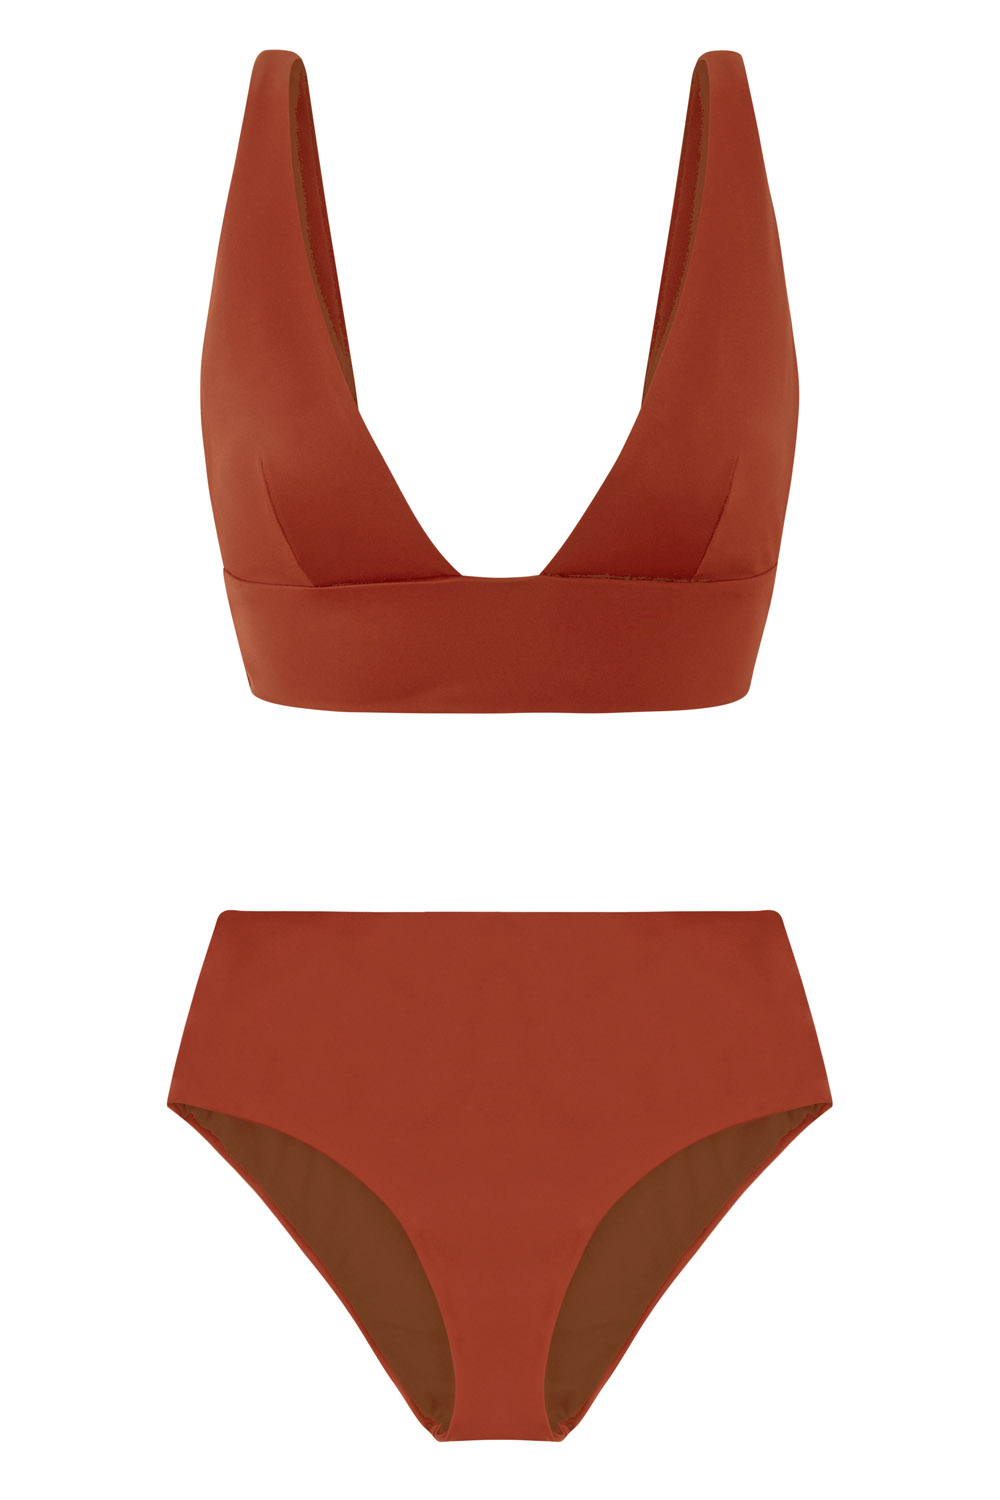 Sustainable Luxury Swimwear / Ropa de baño sostenible, eco bikini / bikini ecológico. Kapalai + Farond in clay, by NOW_THEN